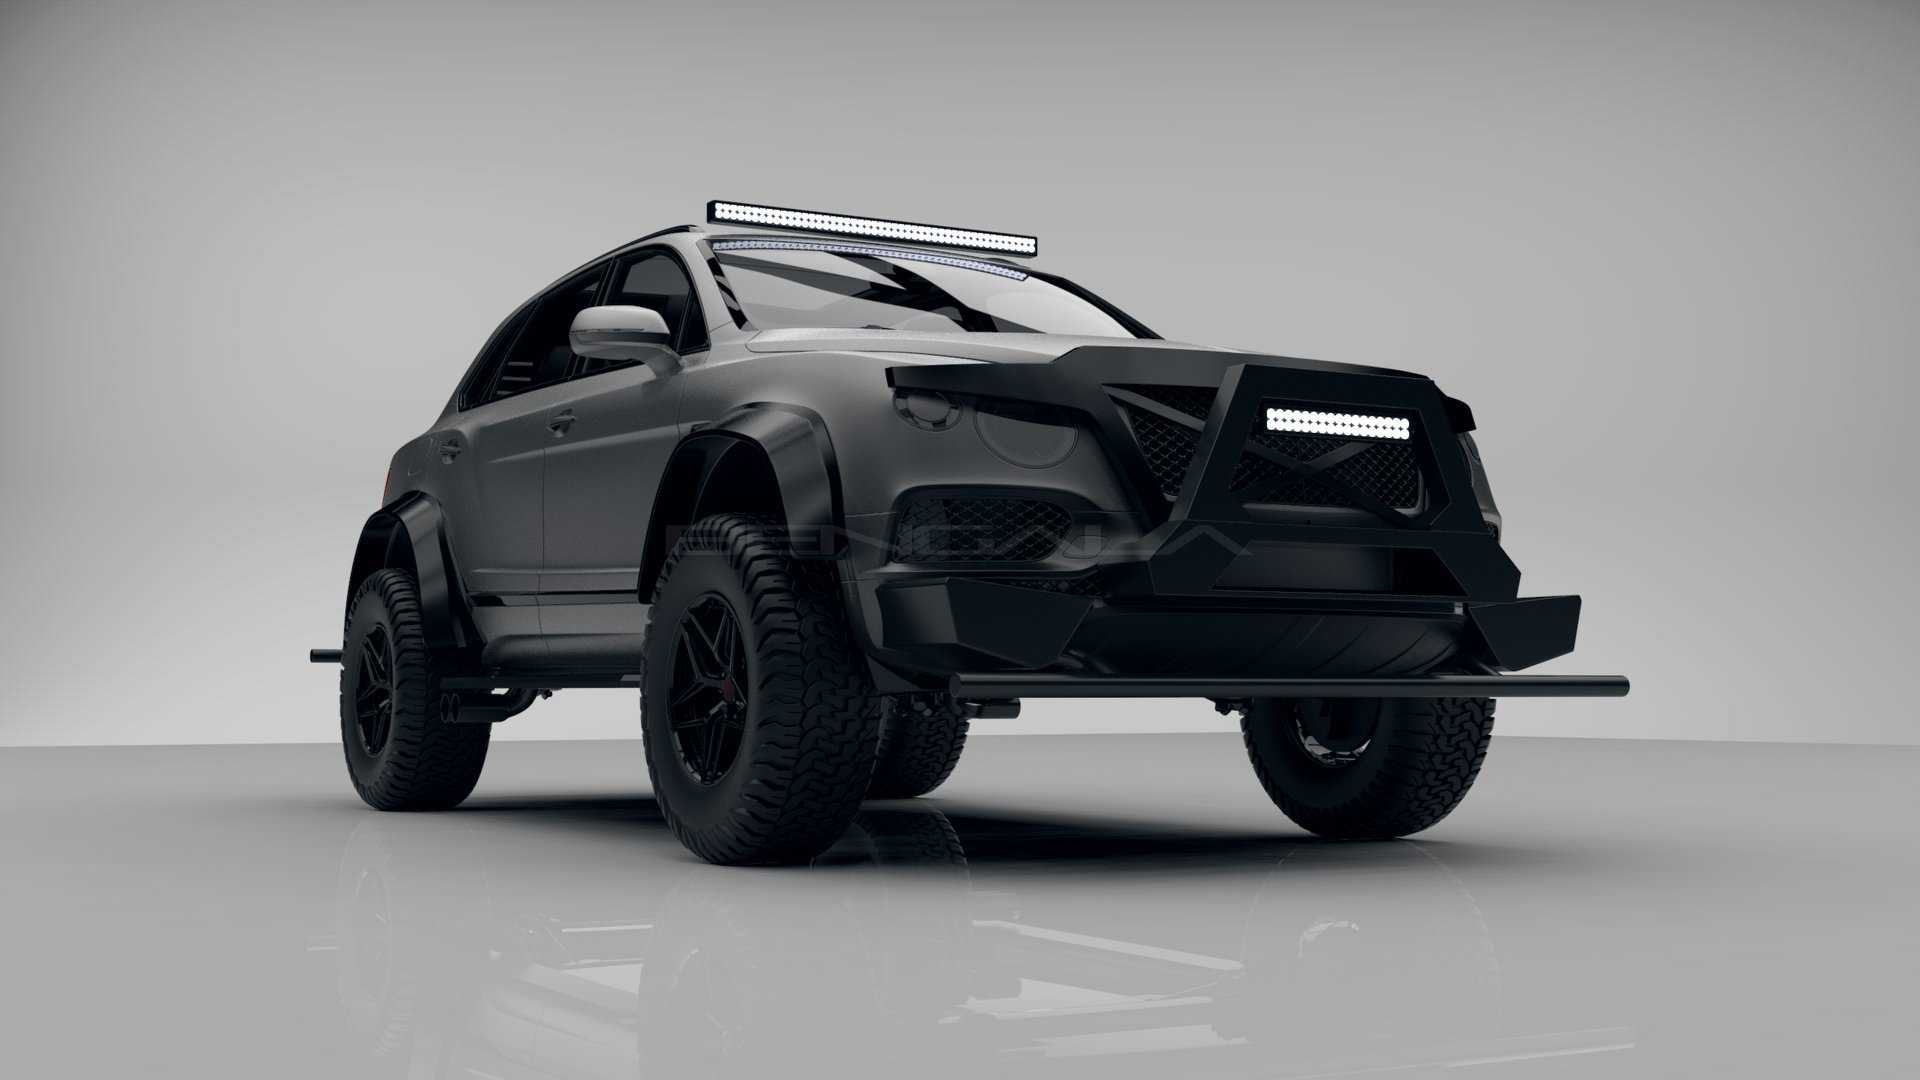 Spain-based car tuner Bengala Automotive Design SL has released teasers of a custom SUV based on the Bentley Bentayga